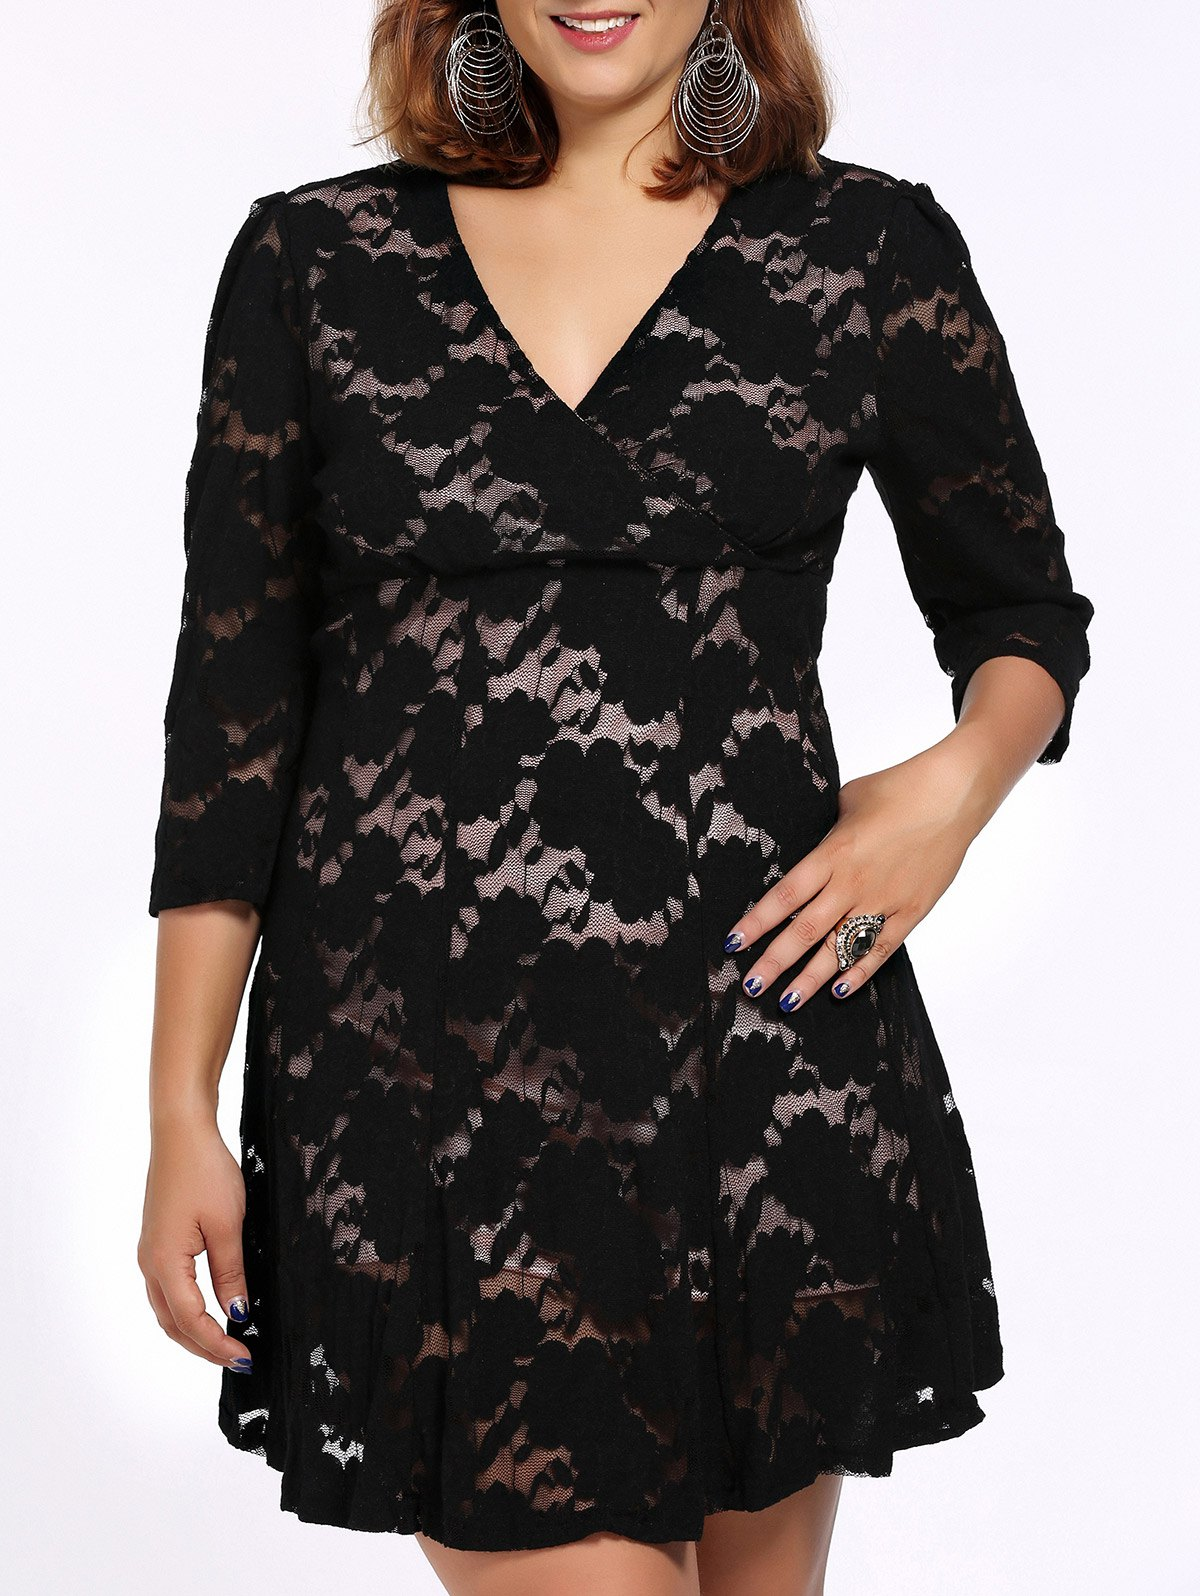 Alluring Plus Size Black 3/4 Sleeve Plunging Neck Women's Lace Dress - BLACK 3XL